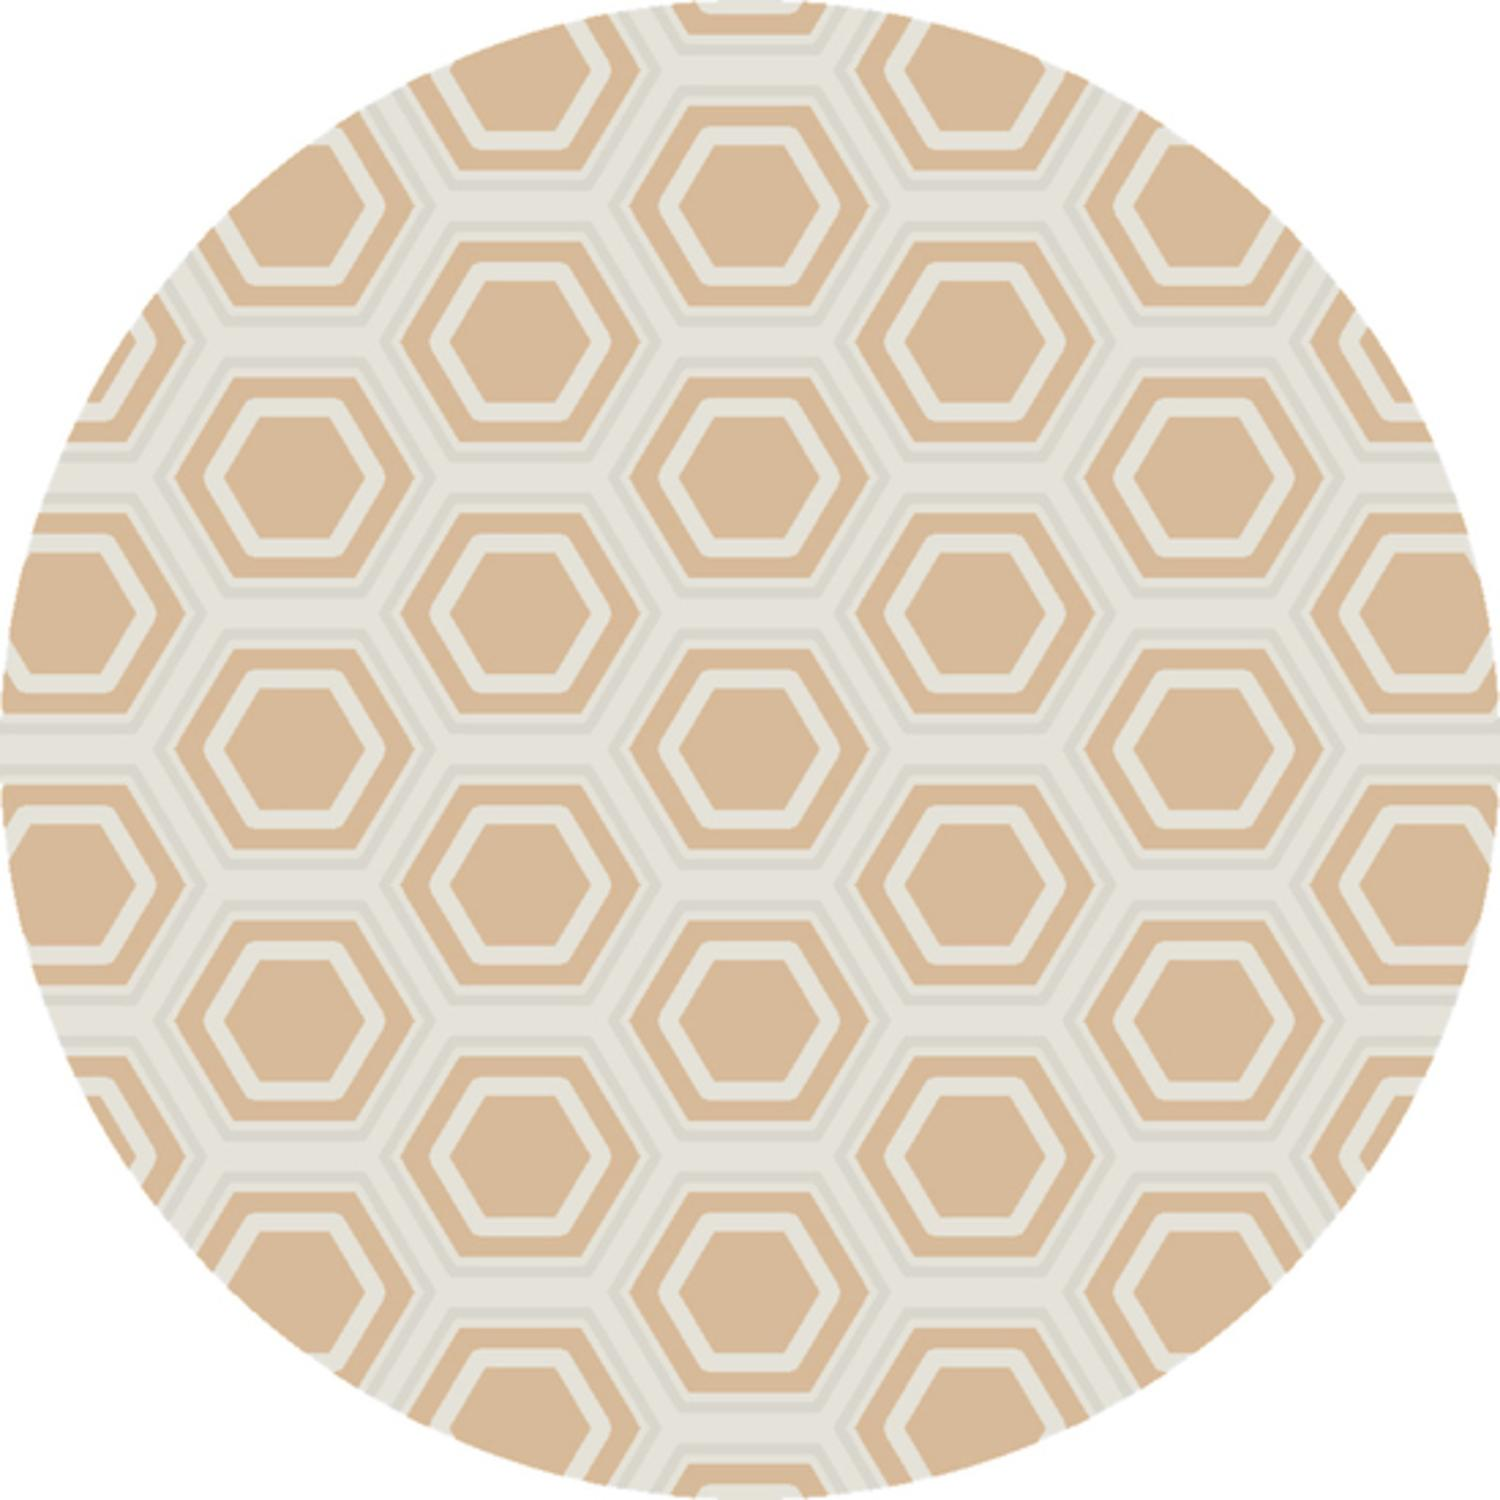 8' Retro Octagon Goldenrod and Silver Round Wool Area Throw Rug by Diva At Home